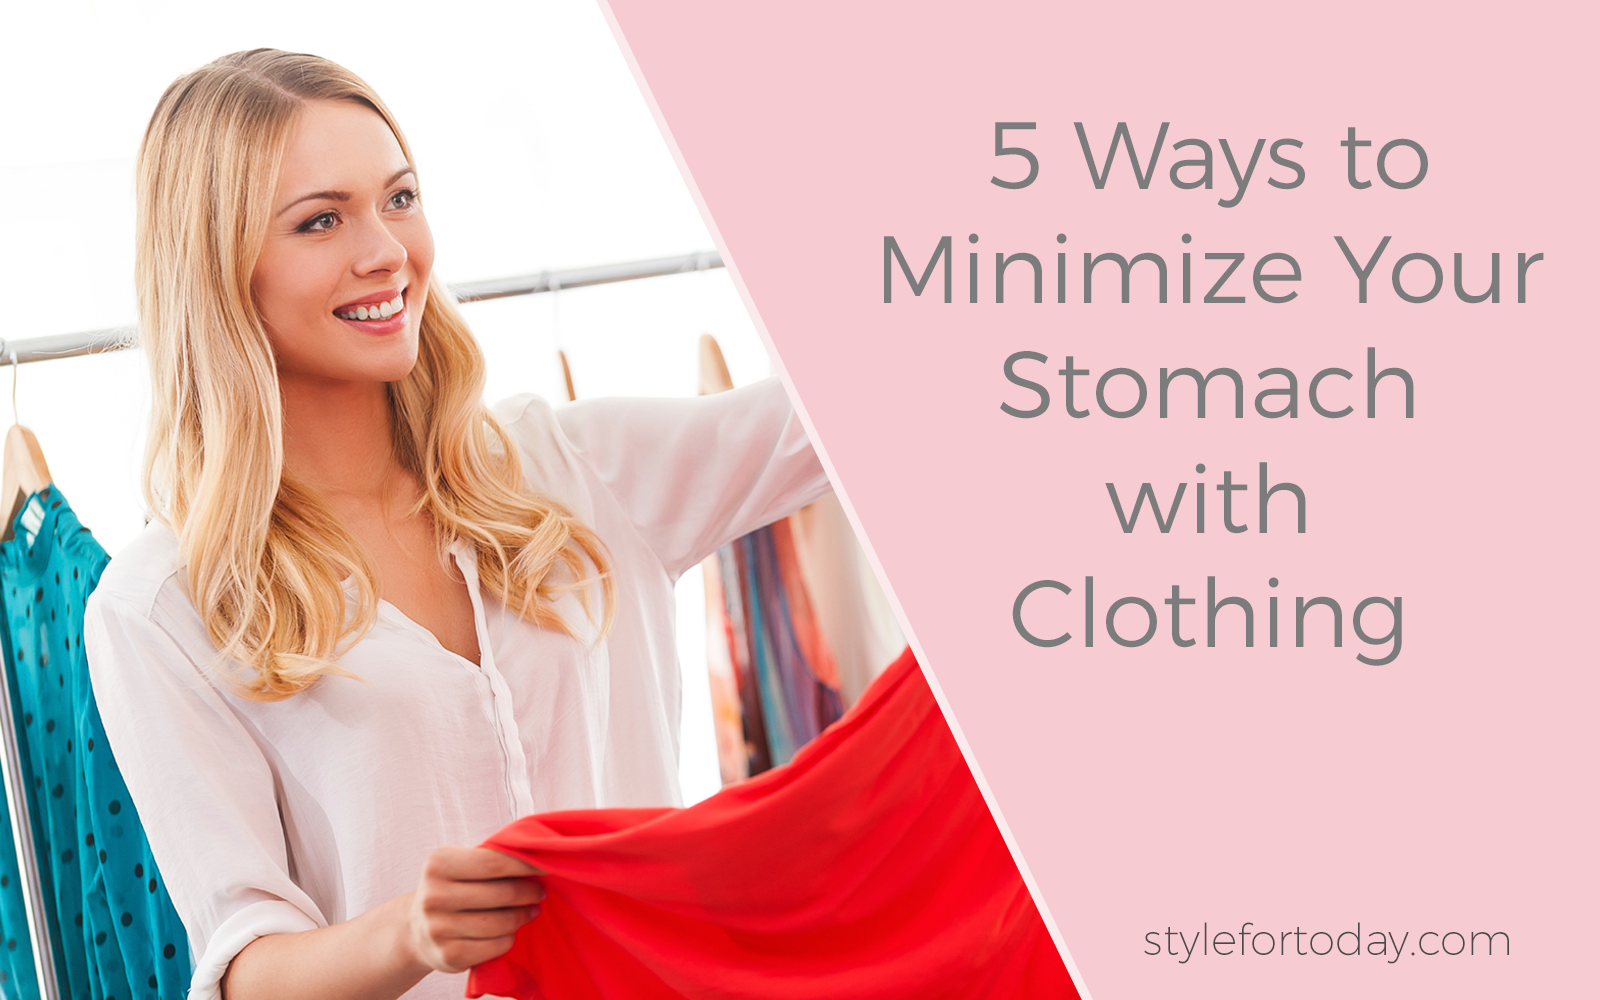 5 Ways to Minimize Your Stomach With Clothing from Style For Today